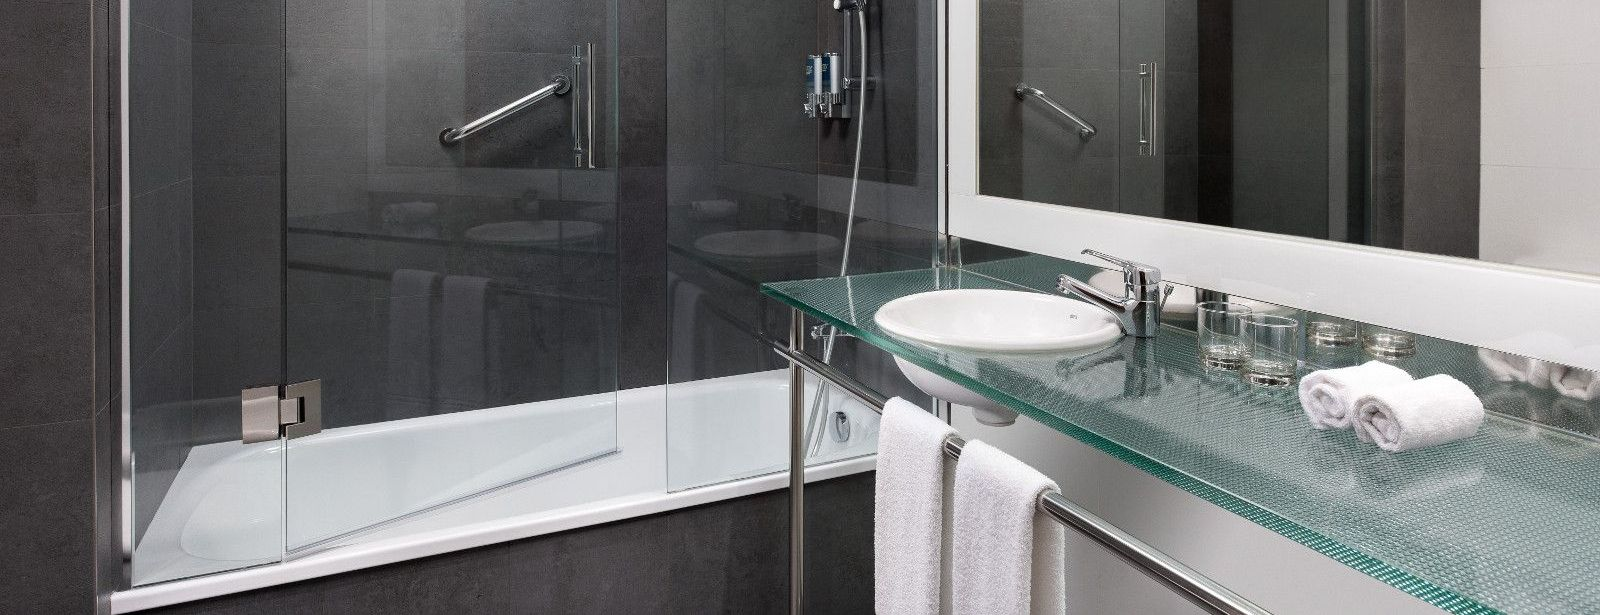 Baño | Four Points by Sheraton Barcelona Diagonal